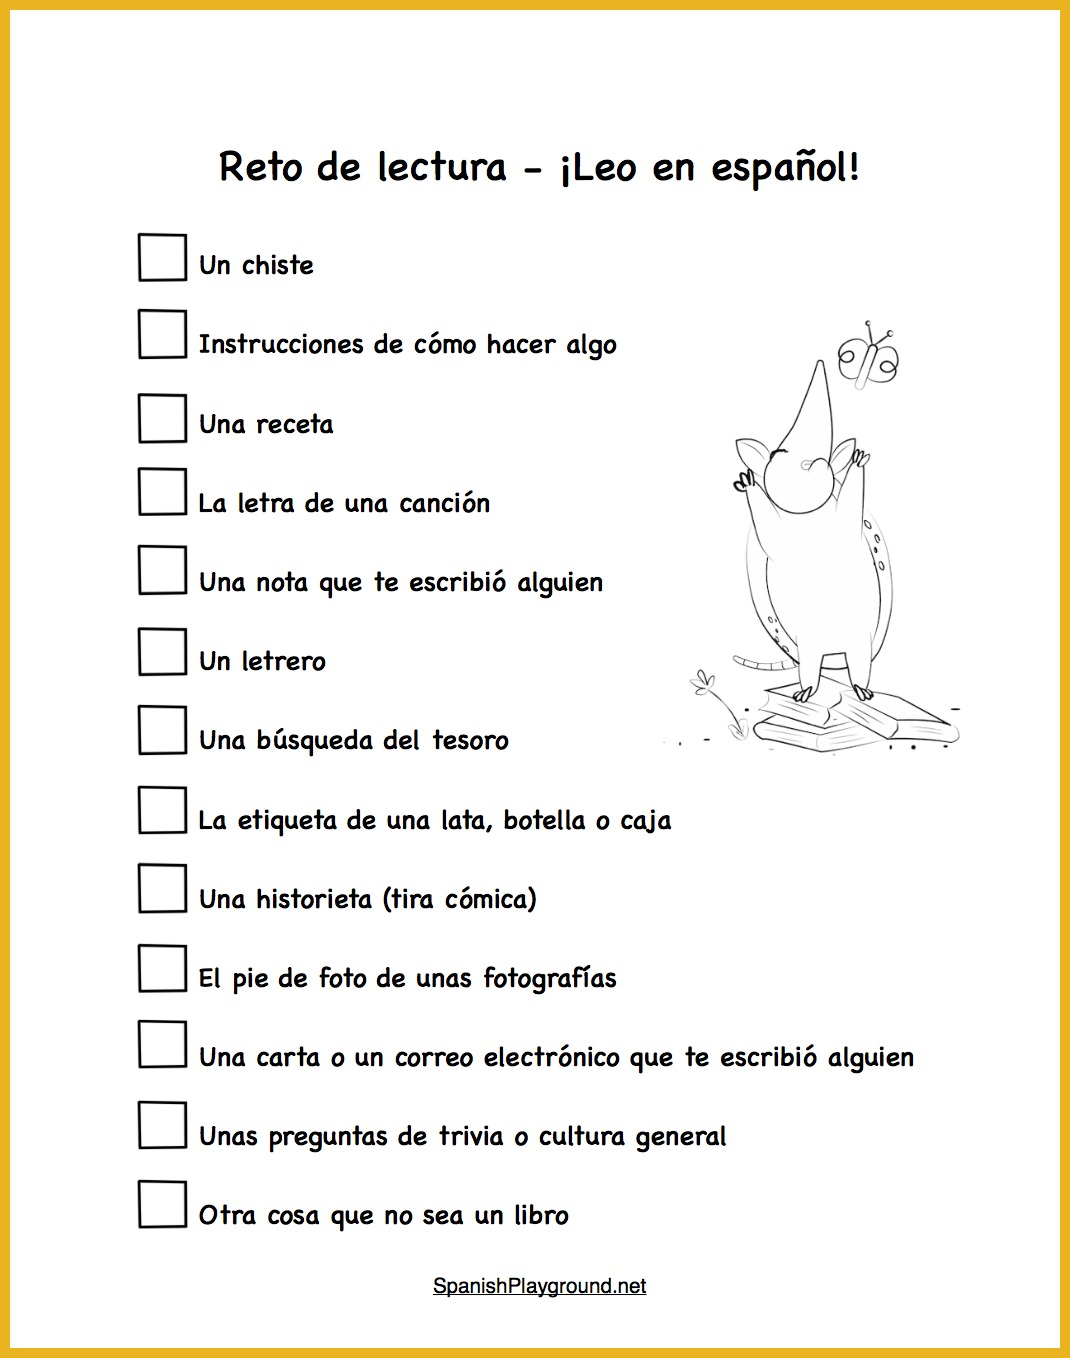 Workbooks notes in spanish worksheets pdf : Spanish Reading Practice: 15 Things to Read - Spanish Playground